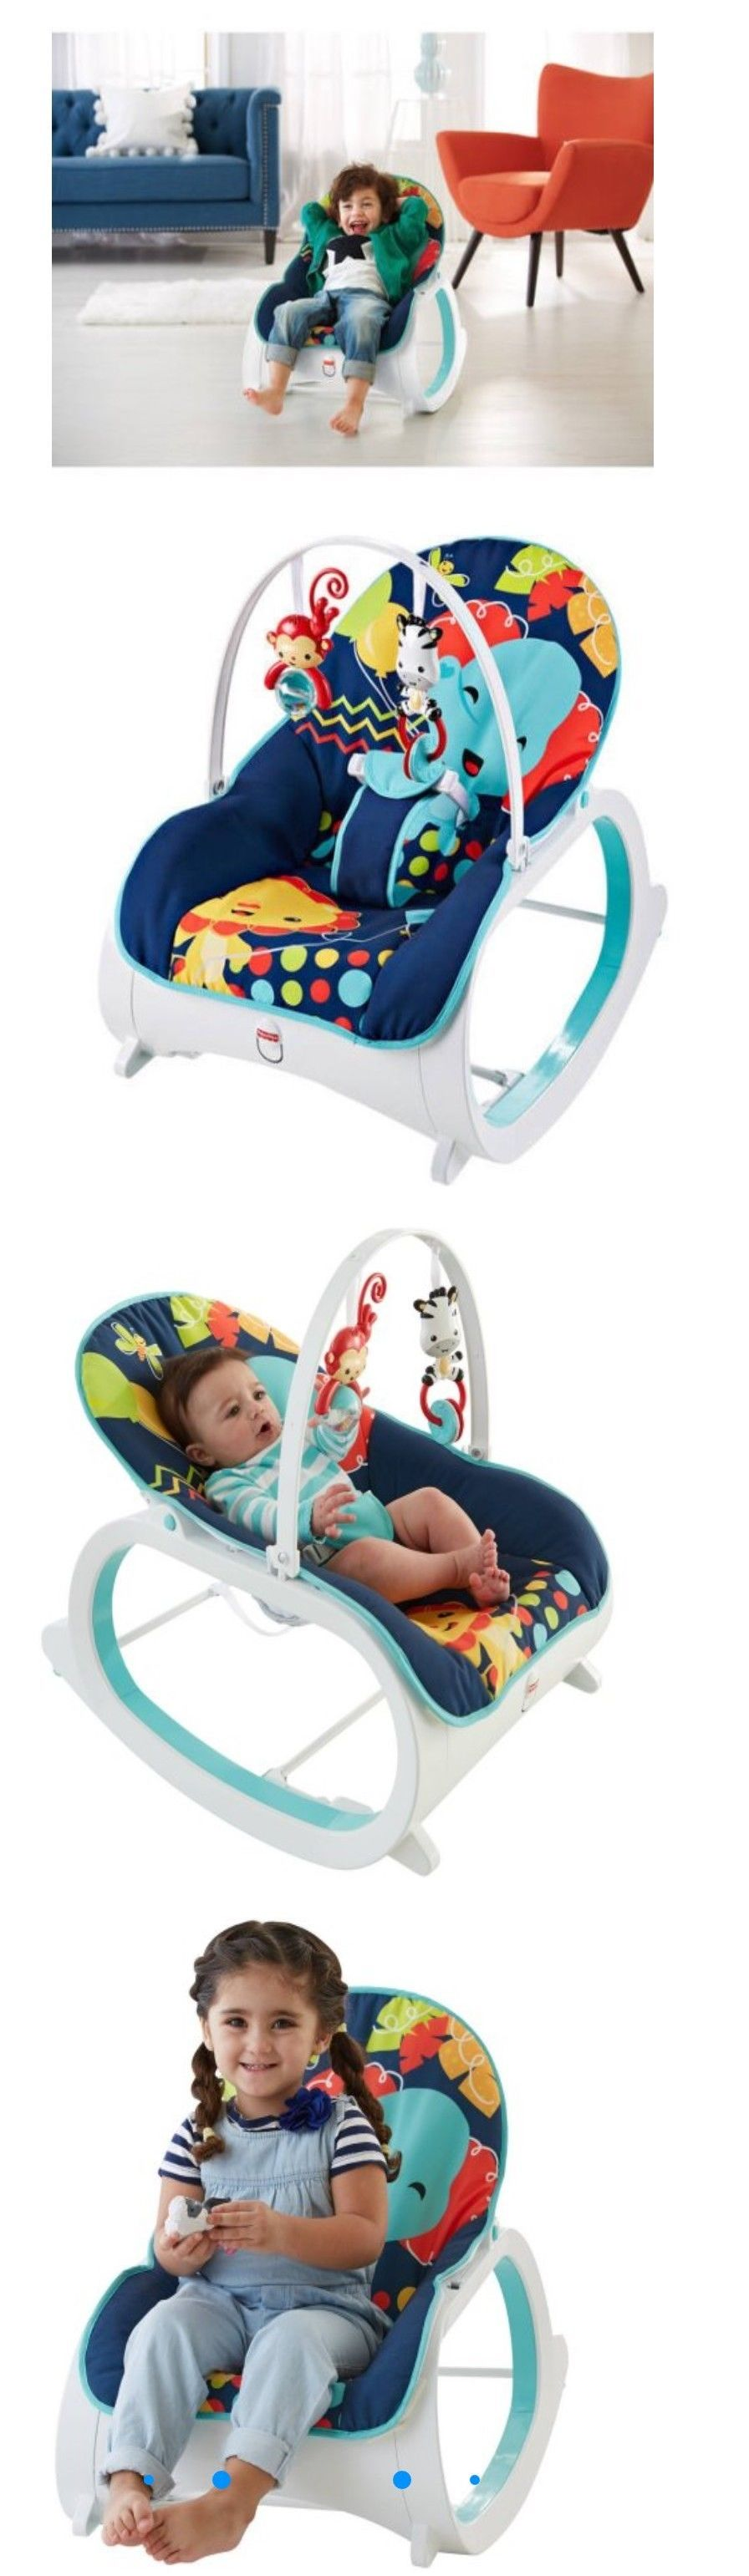 Baby Bouncy Chair Age Pottery Barn Anywhere Fisher Price Infant To Toddler Rocker Seat Bouncer Bouncers And Vibrating Chairs 117034 Sleeper Toy Blue Buy It Now Only 49 82 On Ebay